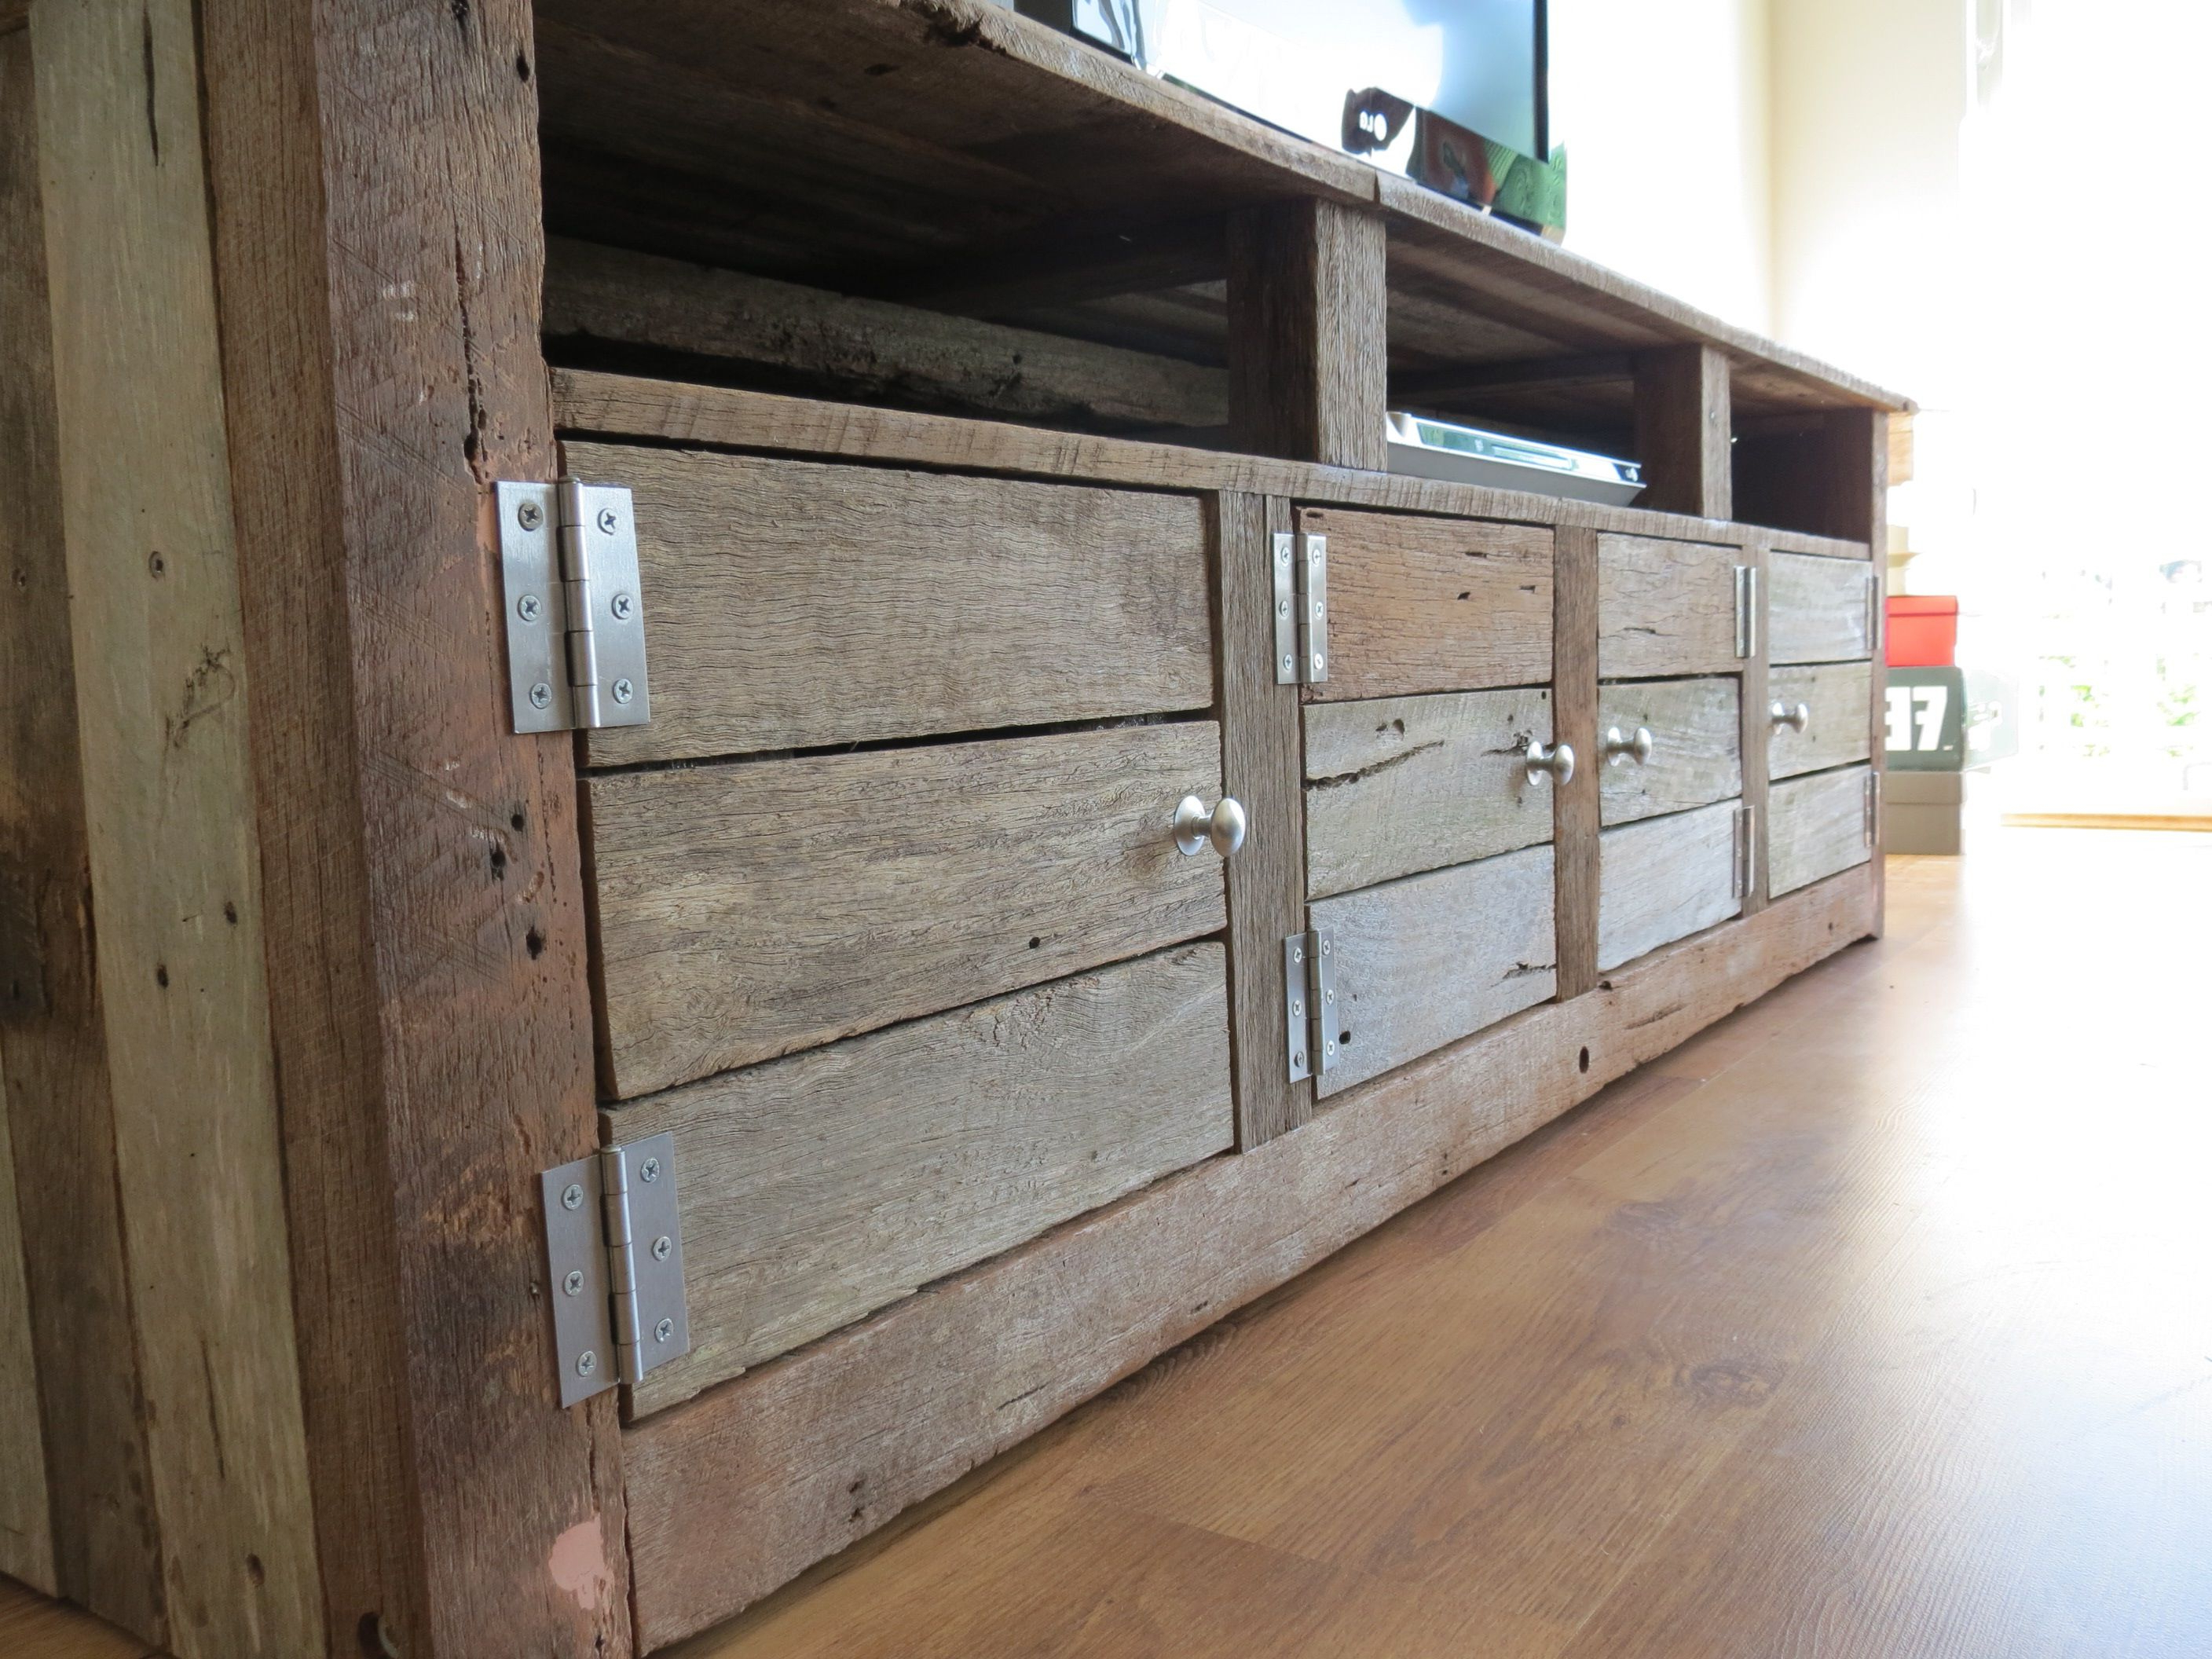 Low Line Tv Unit Made From Recycled Timber | New Home Sweet Home Inside Kilian Black 74 Inch Tv Stands (View 5 of 20)